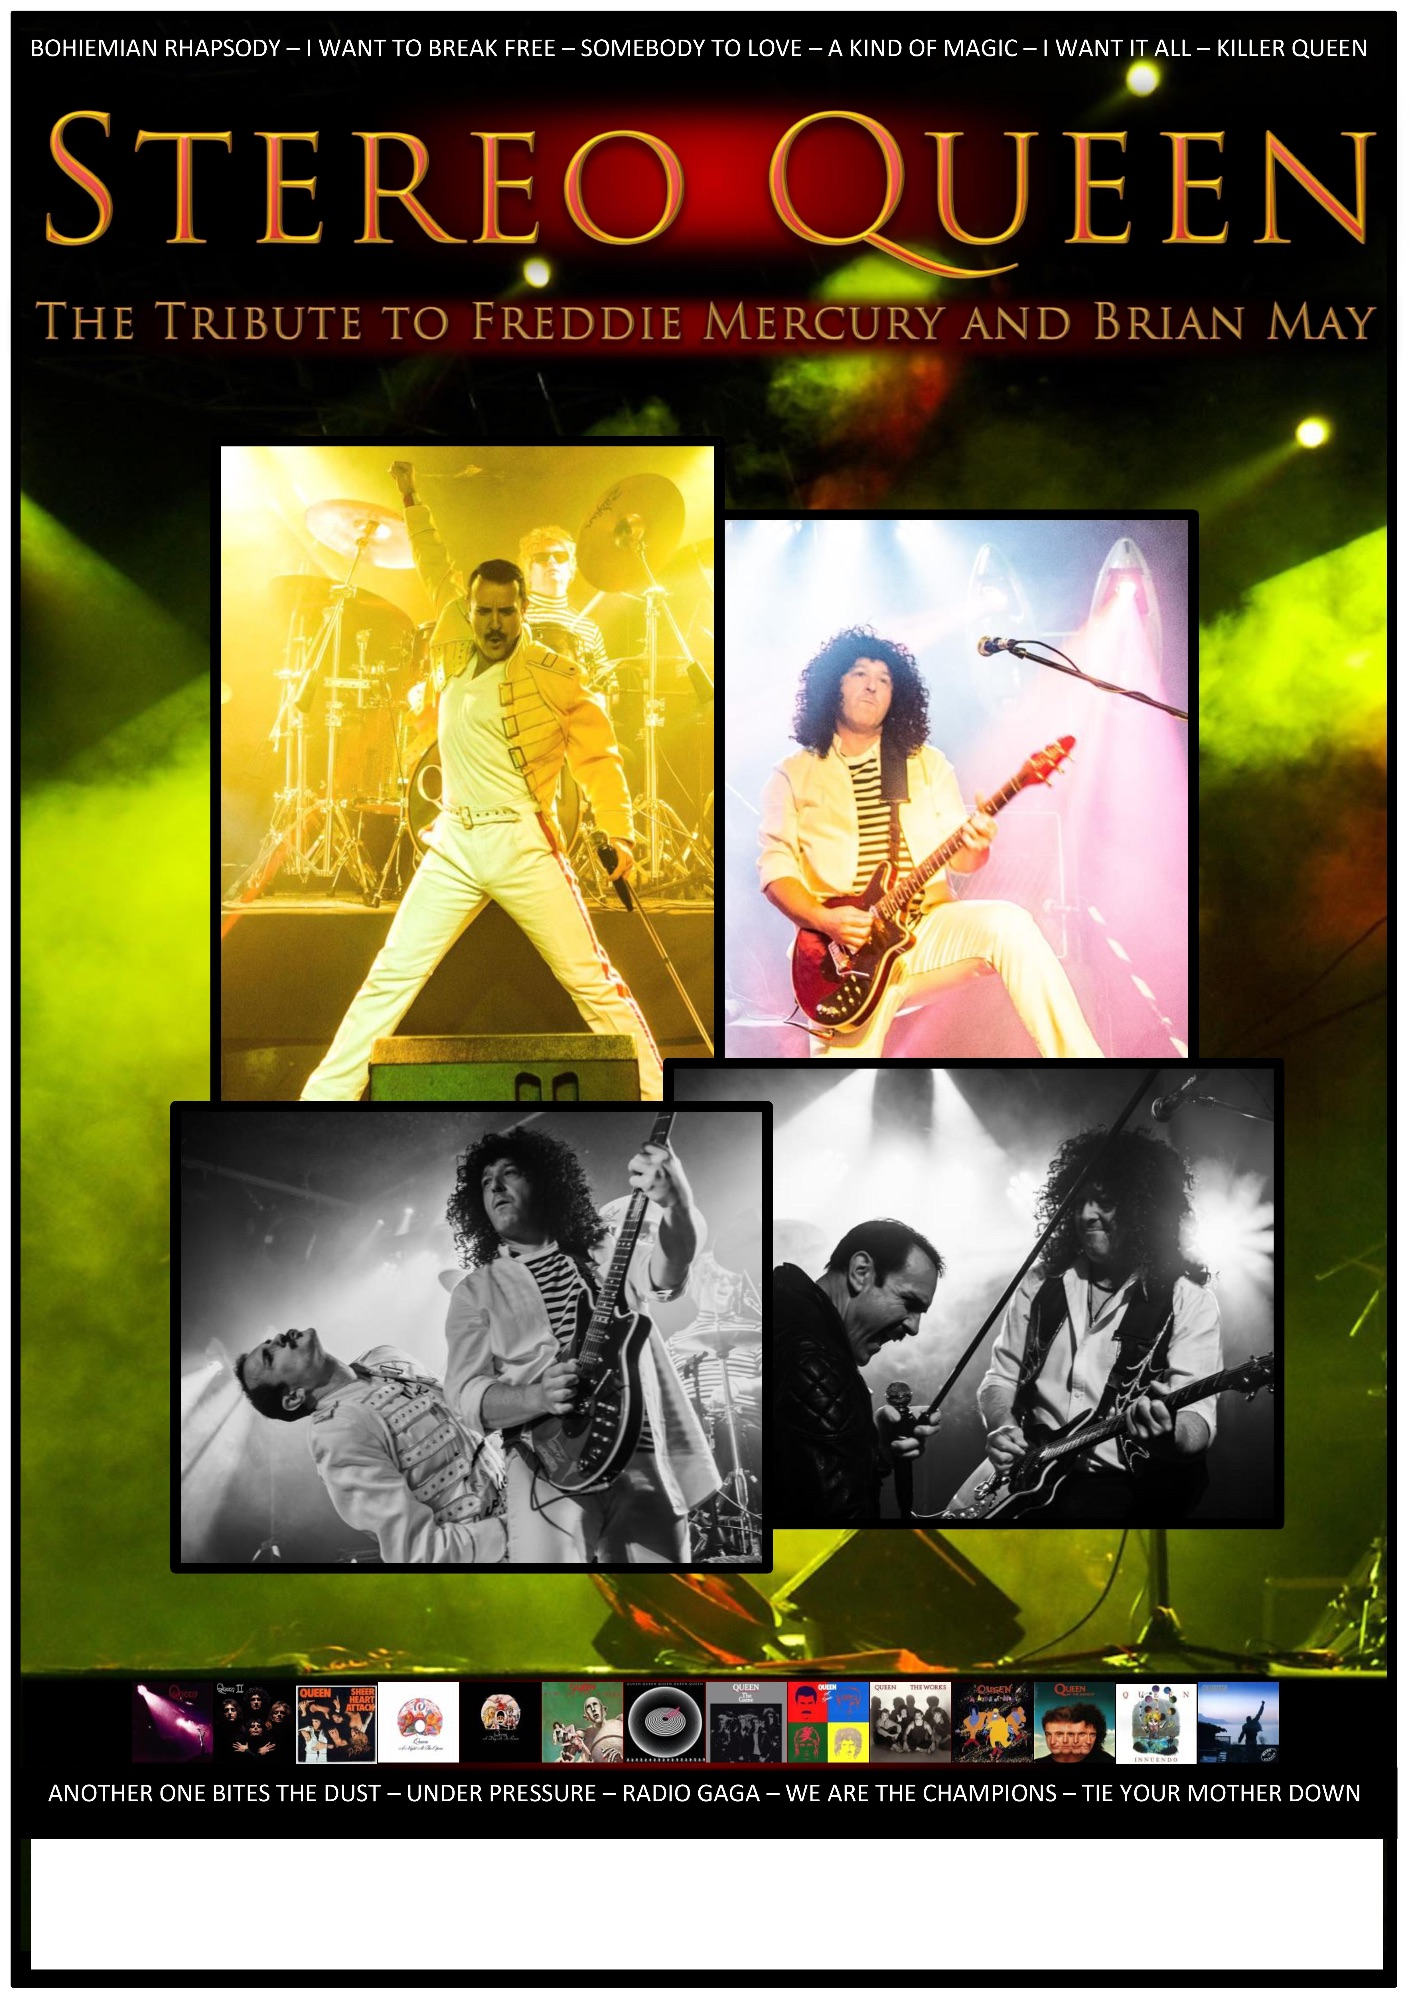 Stereo Queen Freddie Mercury & Brian May Tribute Show Poster